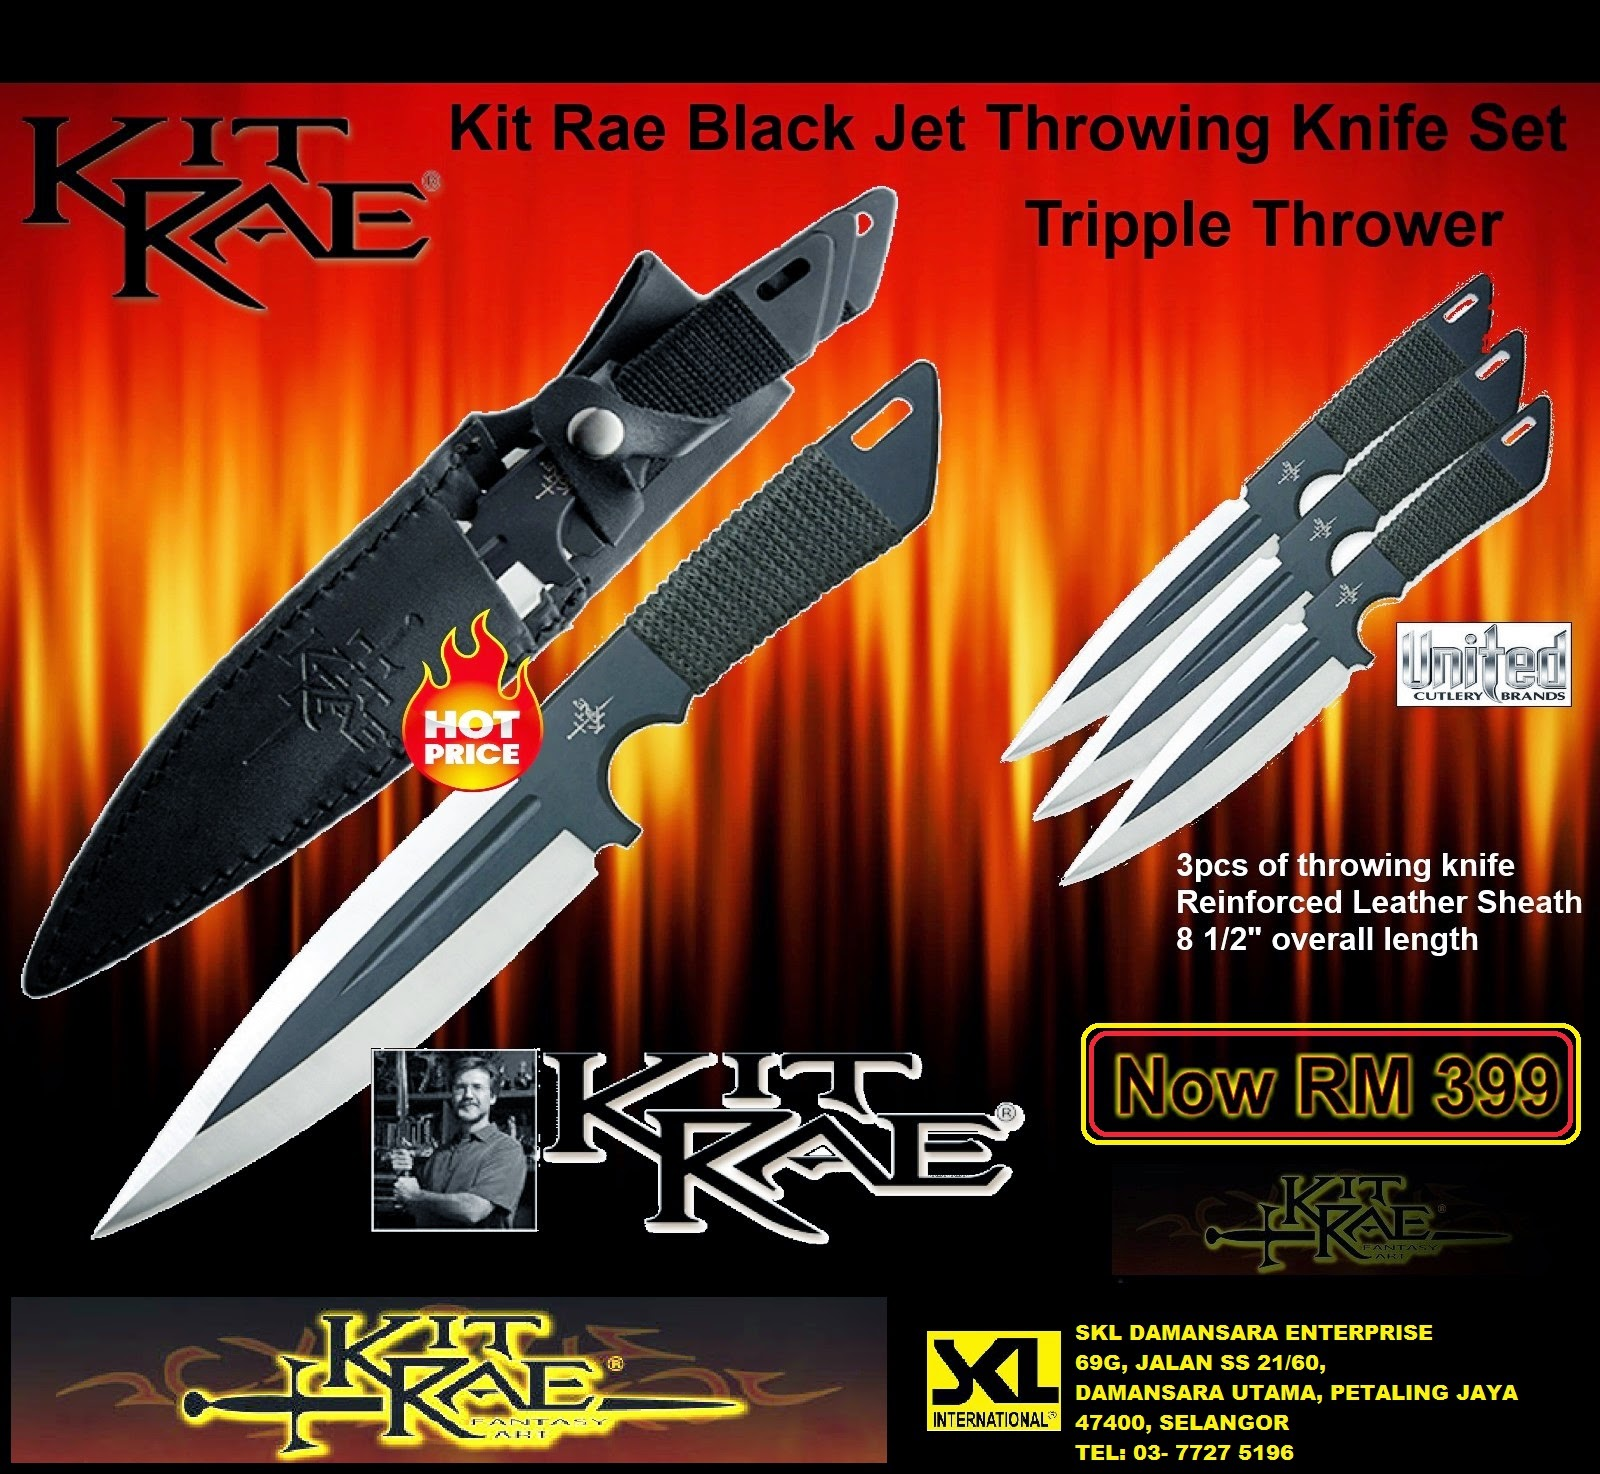 Kitrae Black Jet Throwing Knife Triple Set now at RM 399.00 only!